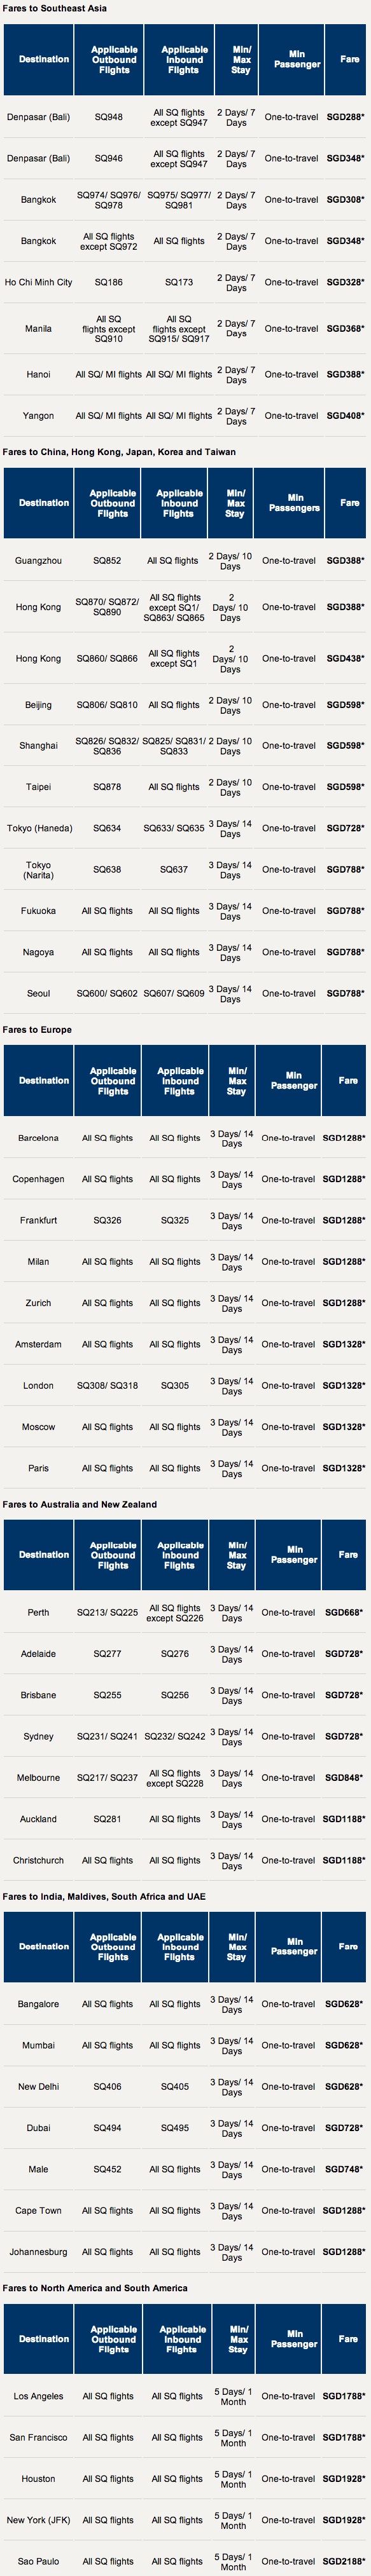 Singapore Airlines Promotion Fare